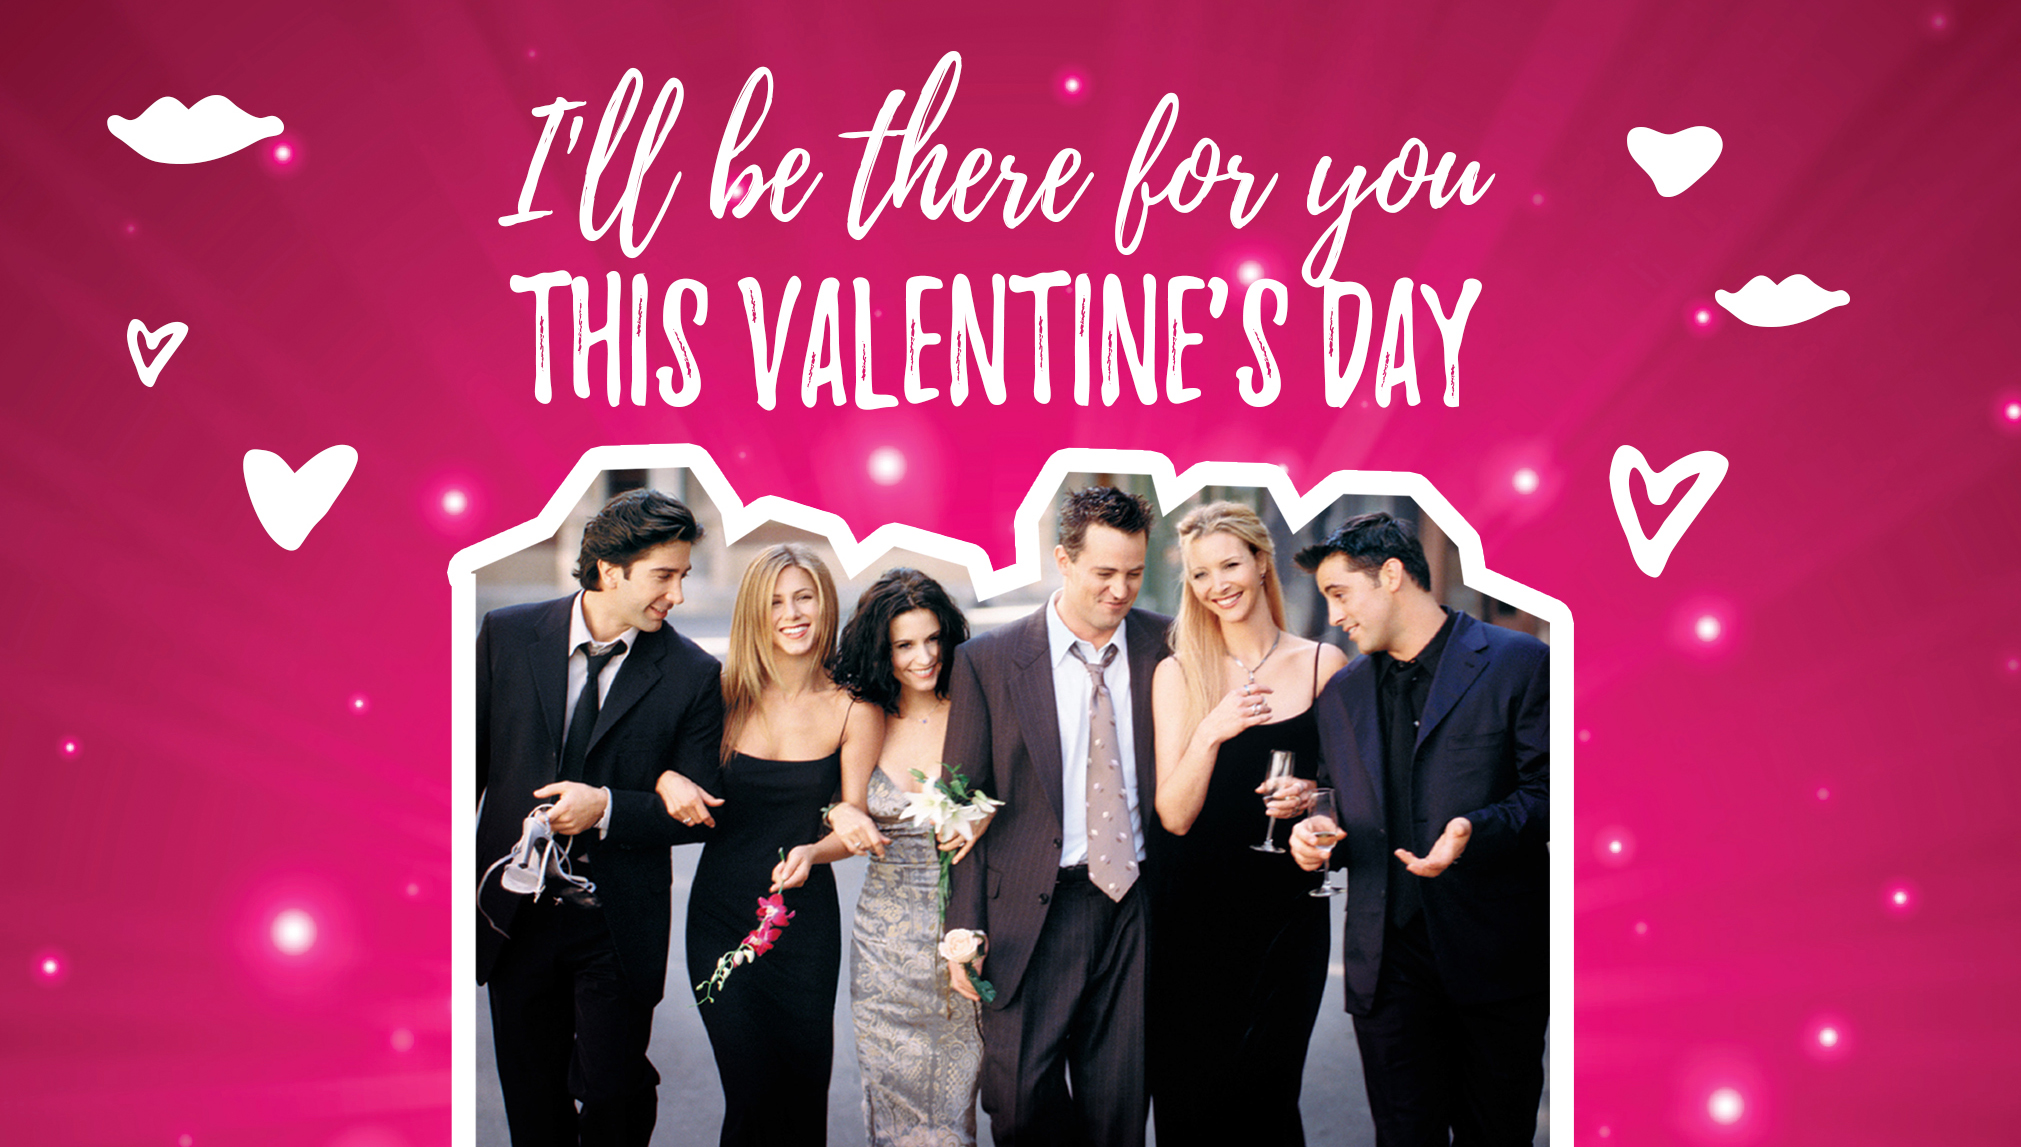 friends tv show valentine 39 s day cards to send to your lobster. Black Bedroom Furniture Sets. Home Design Ideas